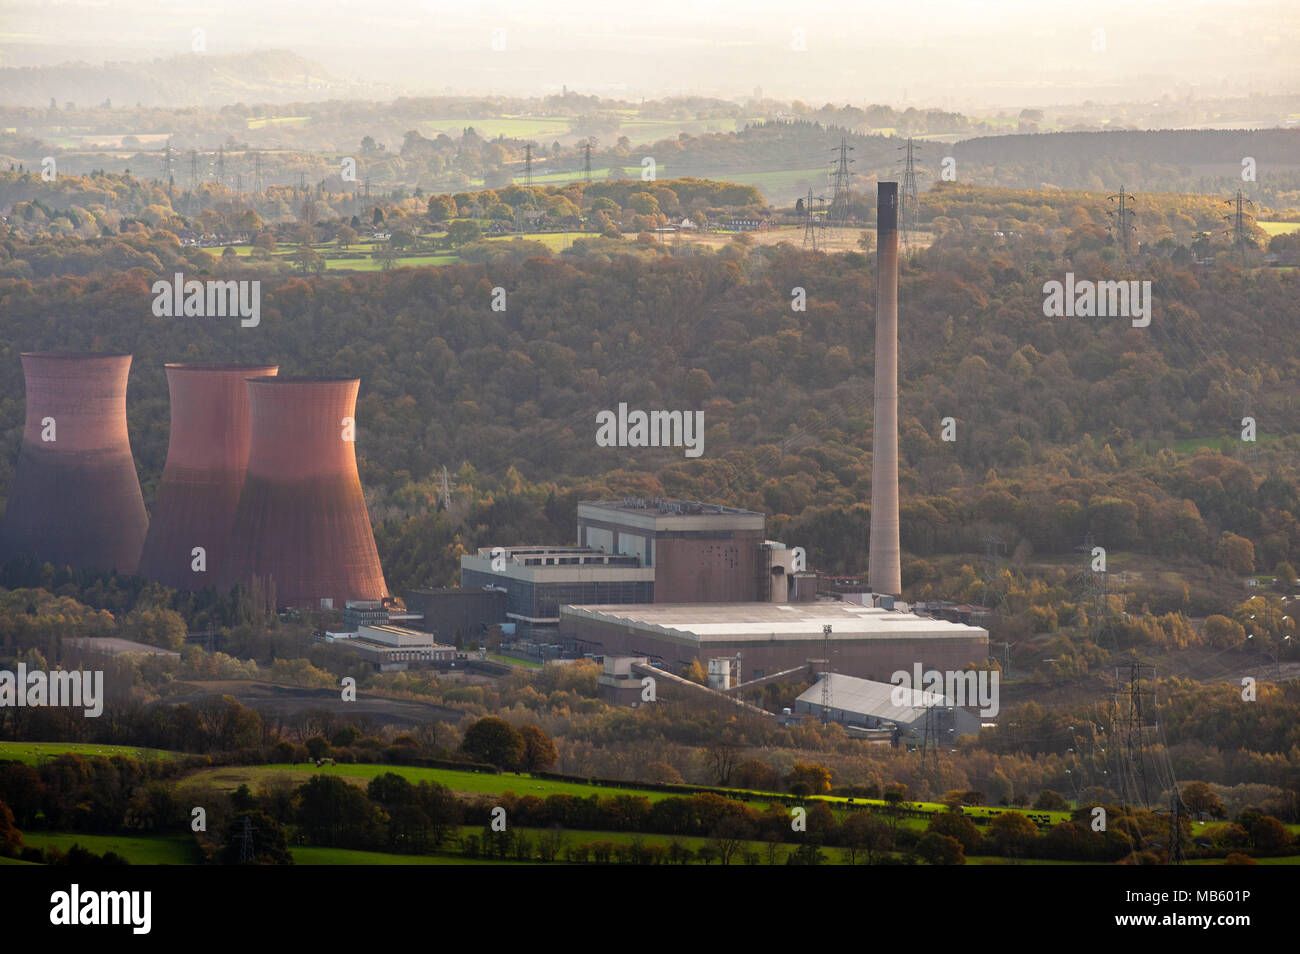 Ironbridge B power station, pink cooling towers, commended for landscaped design in rural setting, now decommissioned and scheduled for demolition. - Stock Image